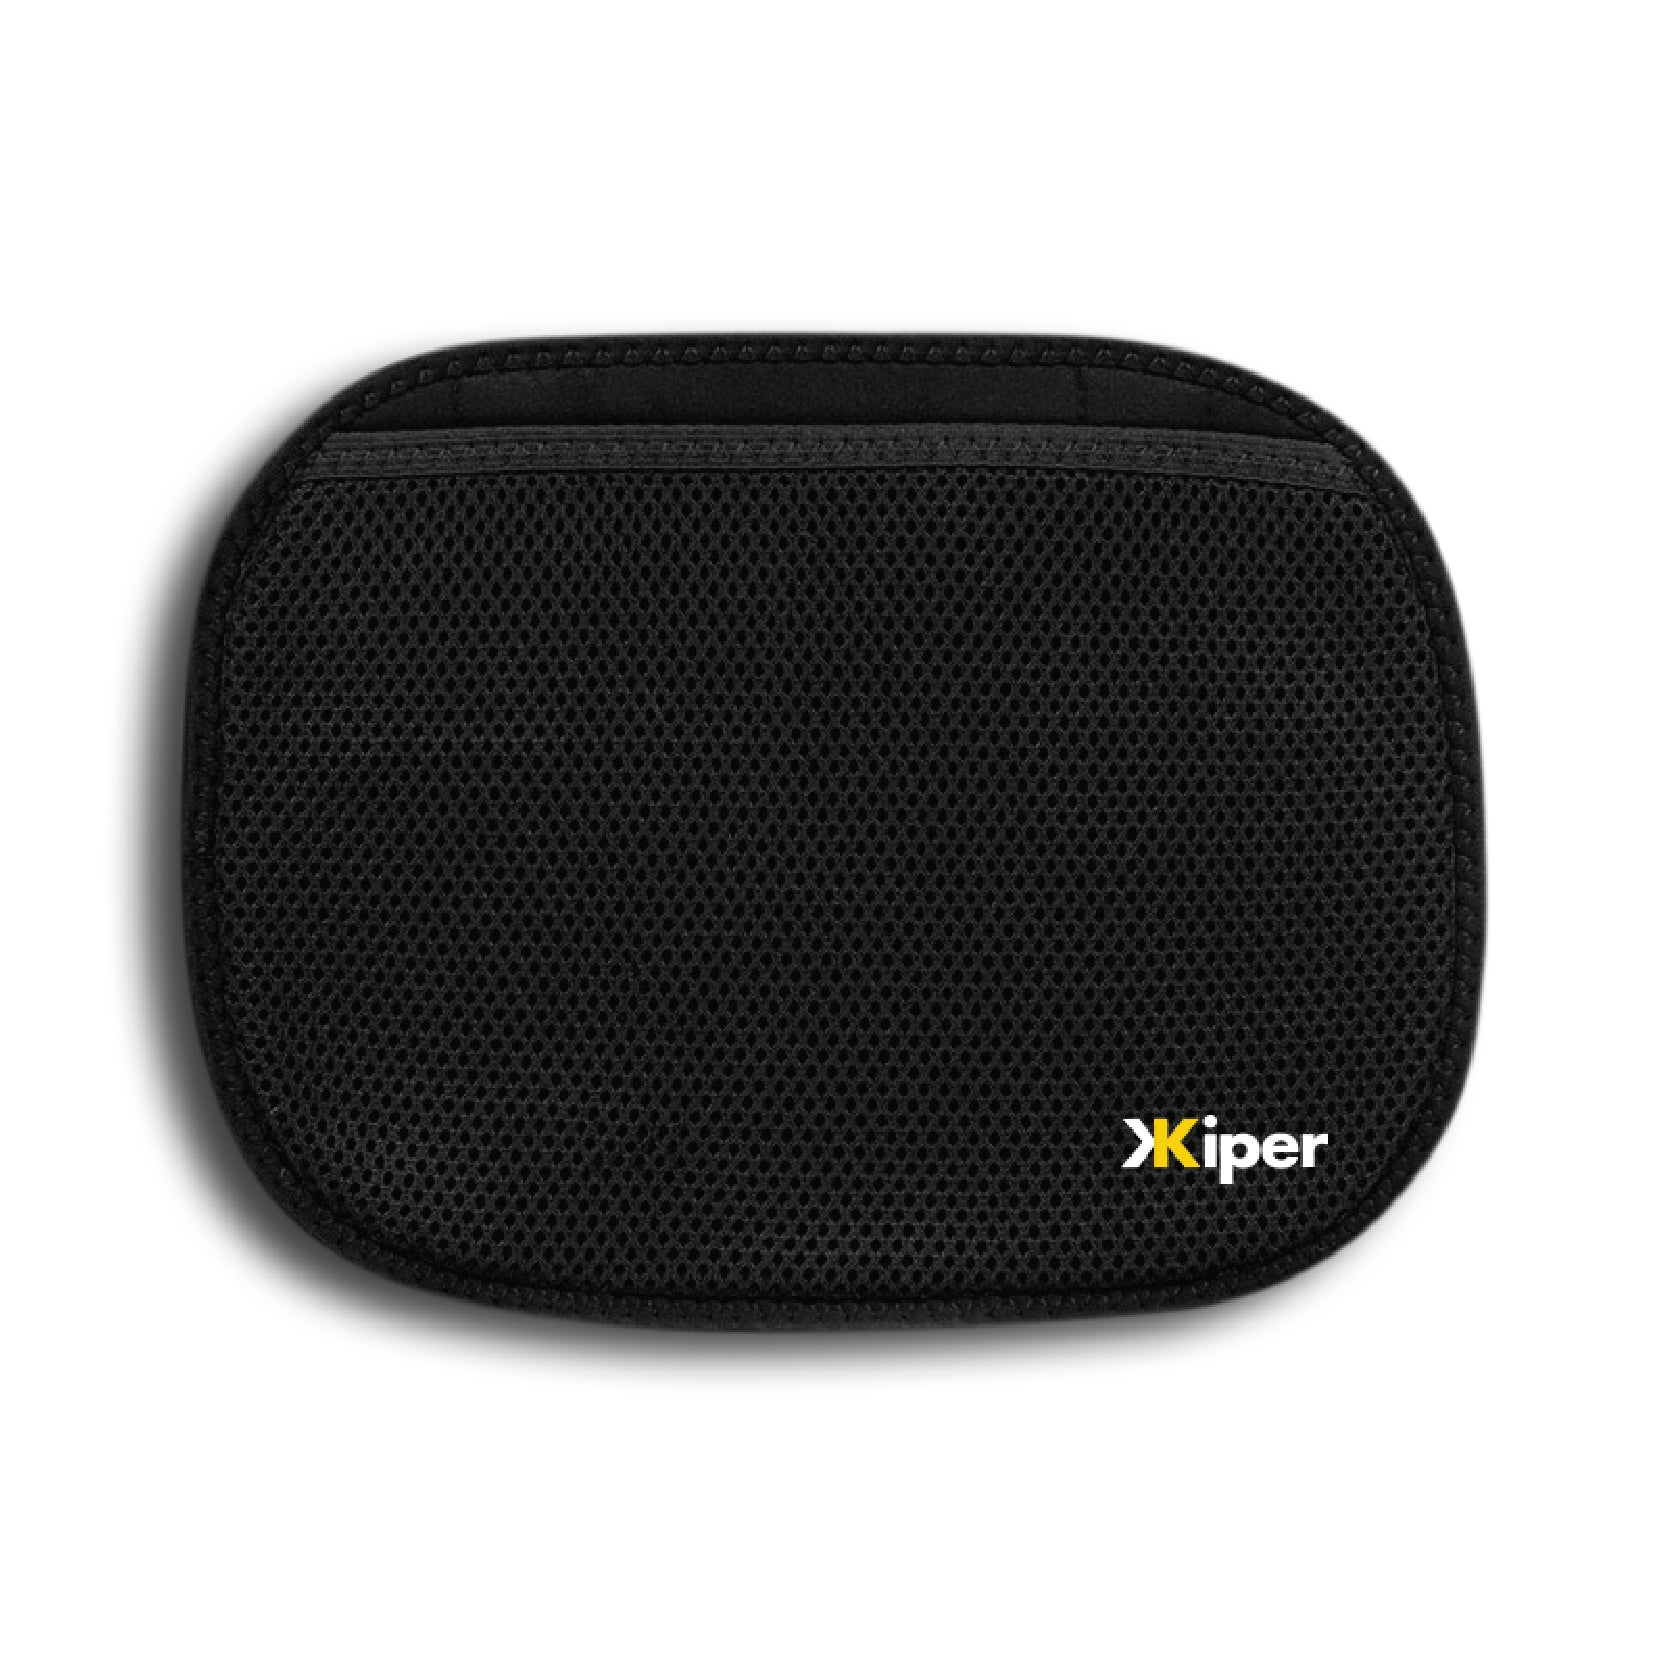 Kiper Support Pad